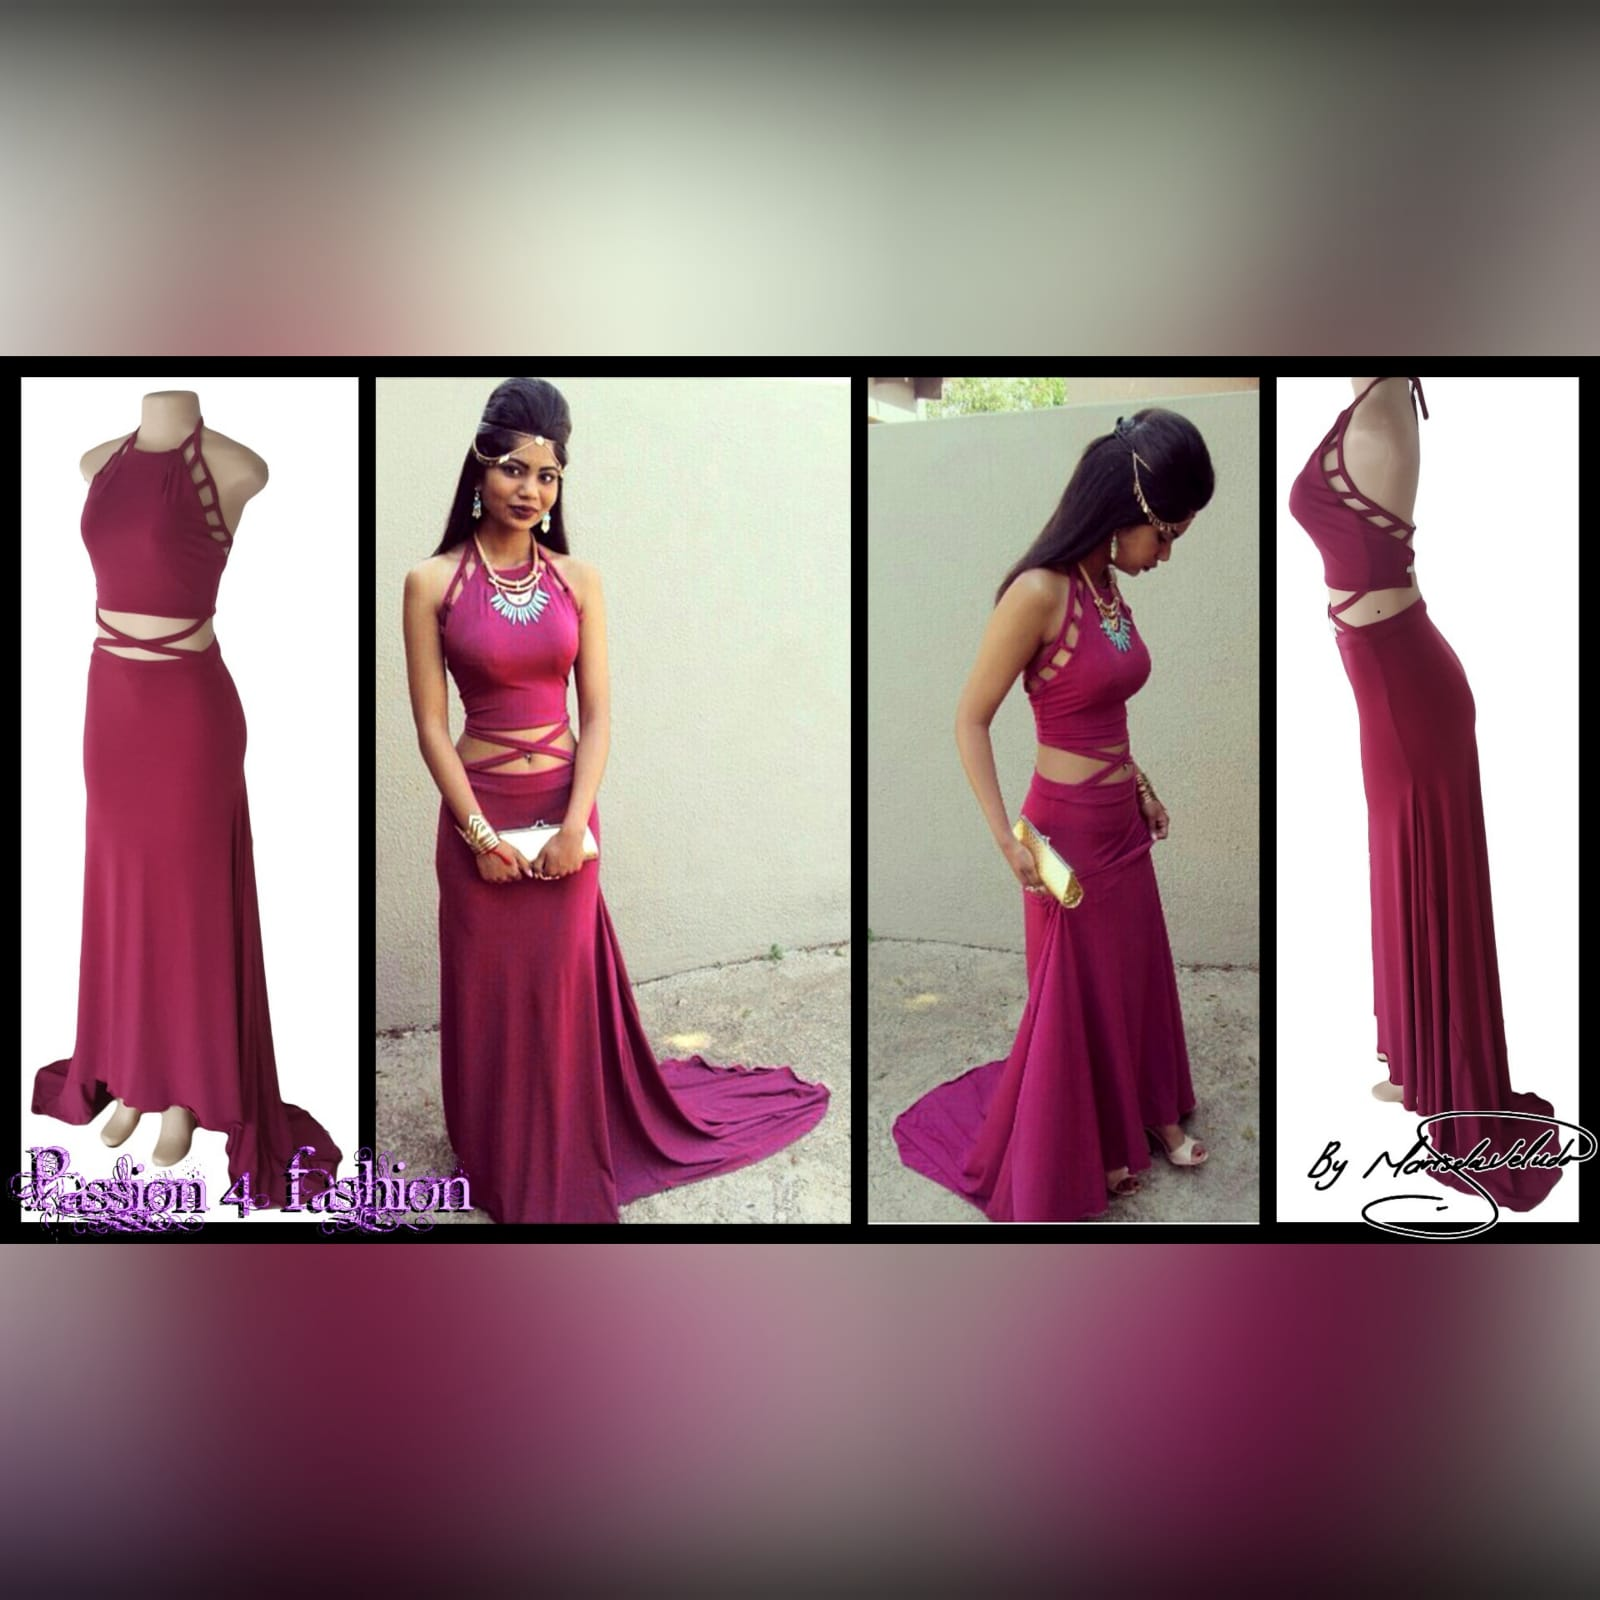 2 piece plum prom dance dress 5 2 piece plum prom dance dress. Halter neck crop top. Straps from the crop top create a cross that joins to the skirt. Skirt fitted till the hip and then very flowy with a long, wide train.